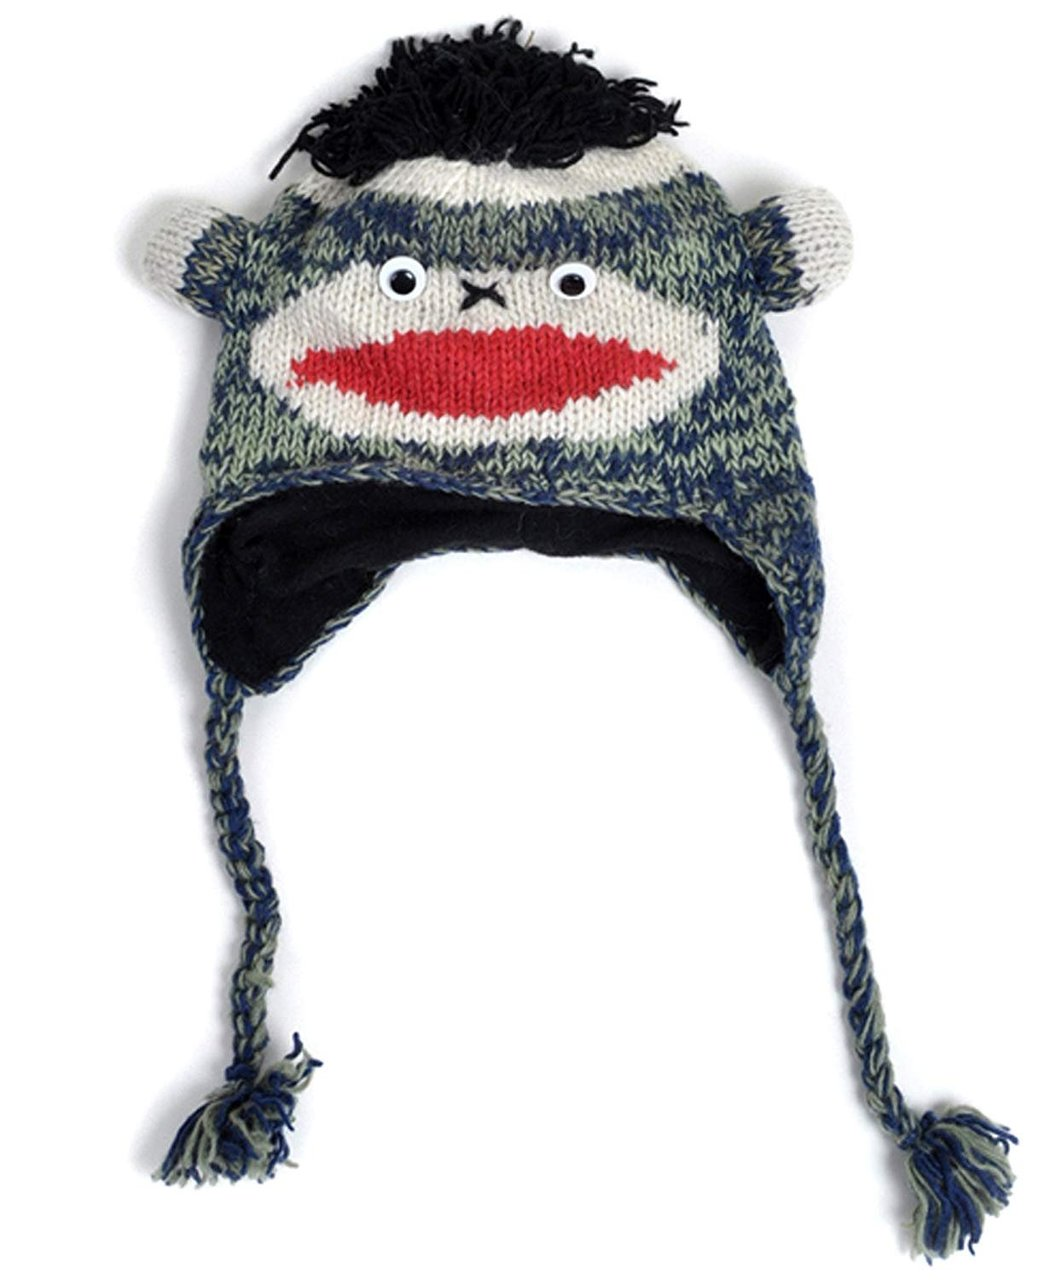 ee31a12ad22 100% Wool  Hat-imals  Plush Knit Winter Hats (Wool Collection)